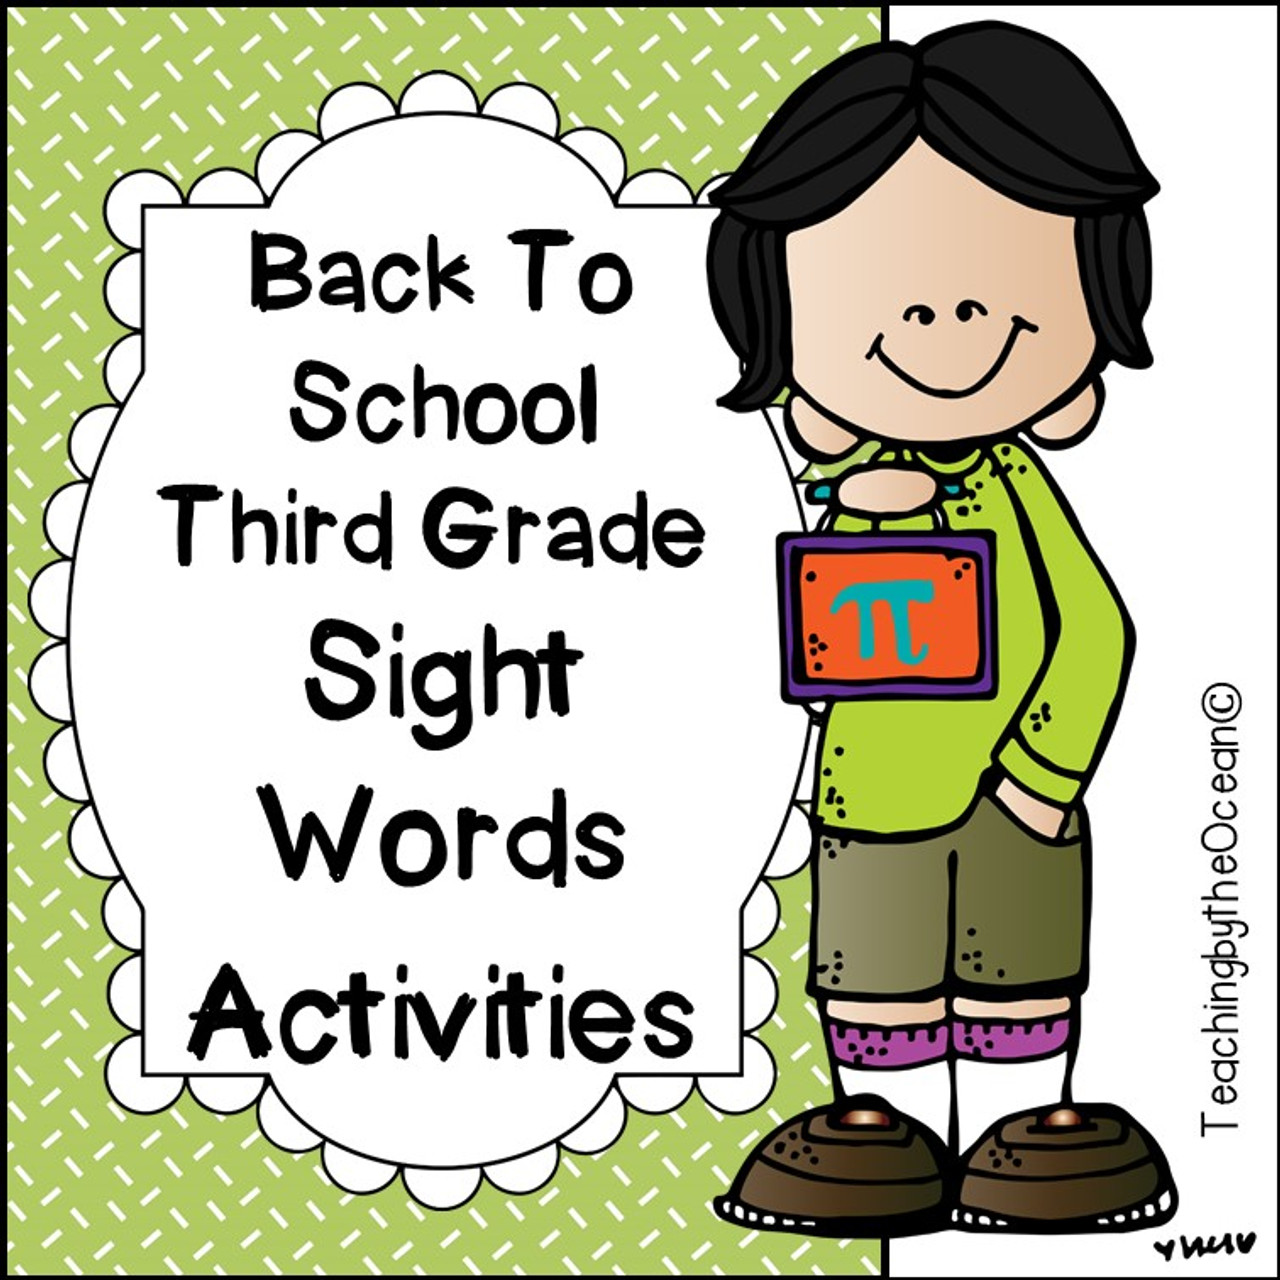 Third Grade Sight Words Worksheets - Back to School Themed - Amped Up  Learning [ 1280 x 1280 Pixel ]